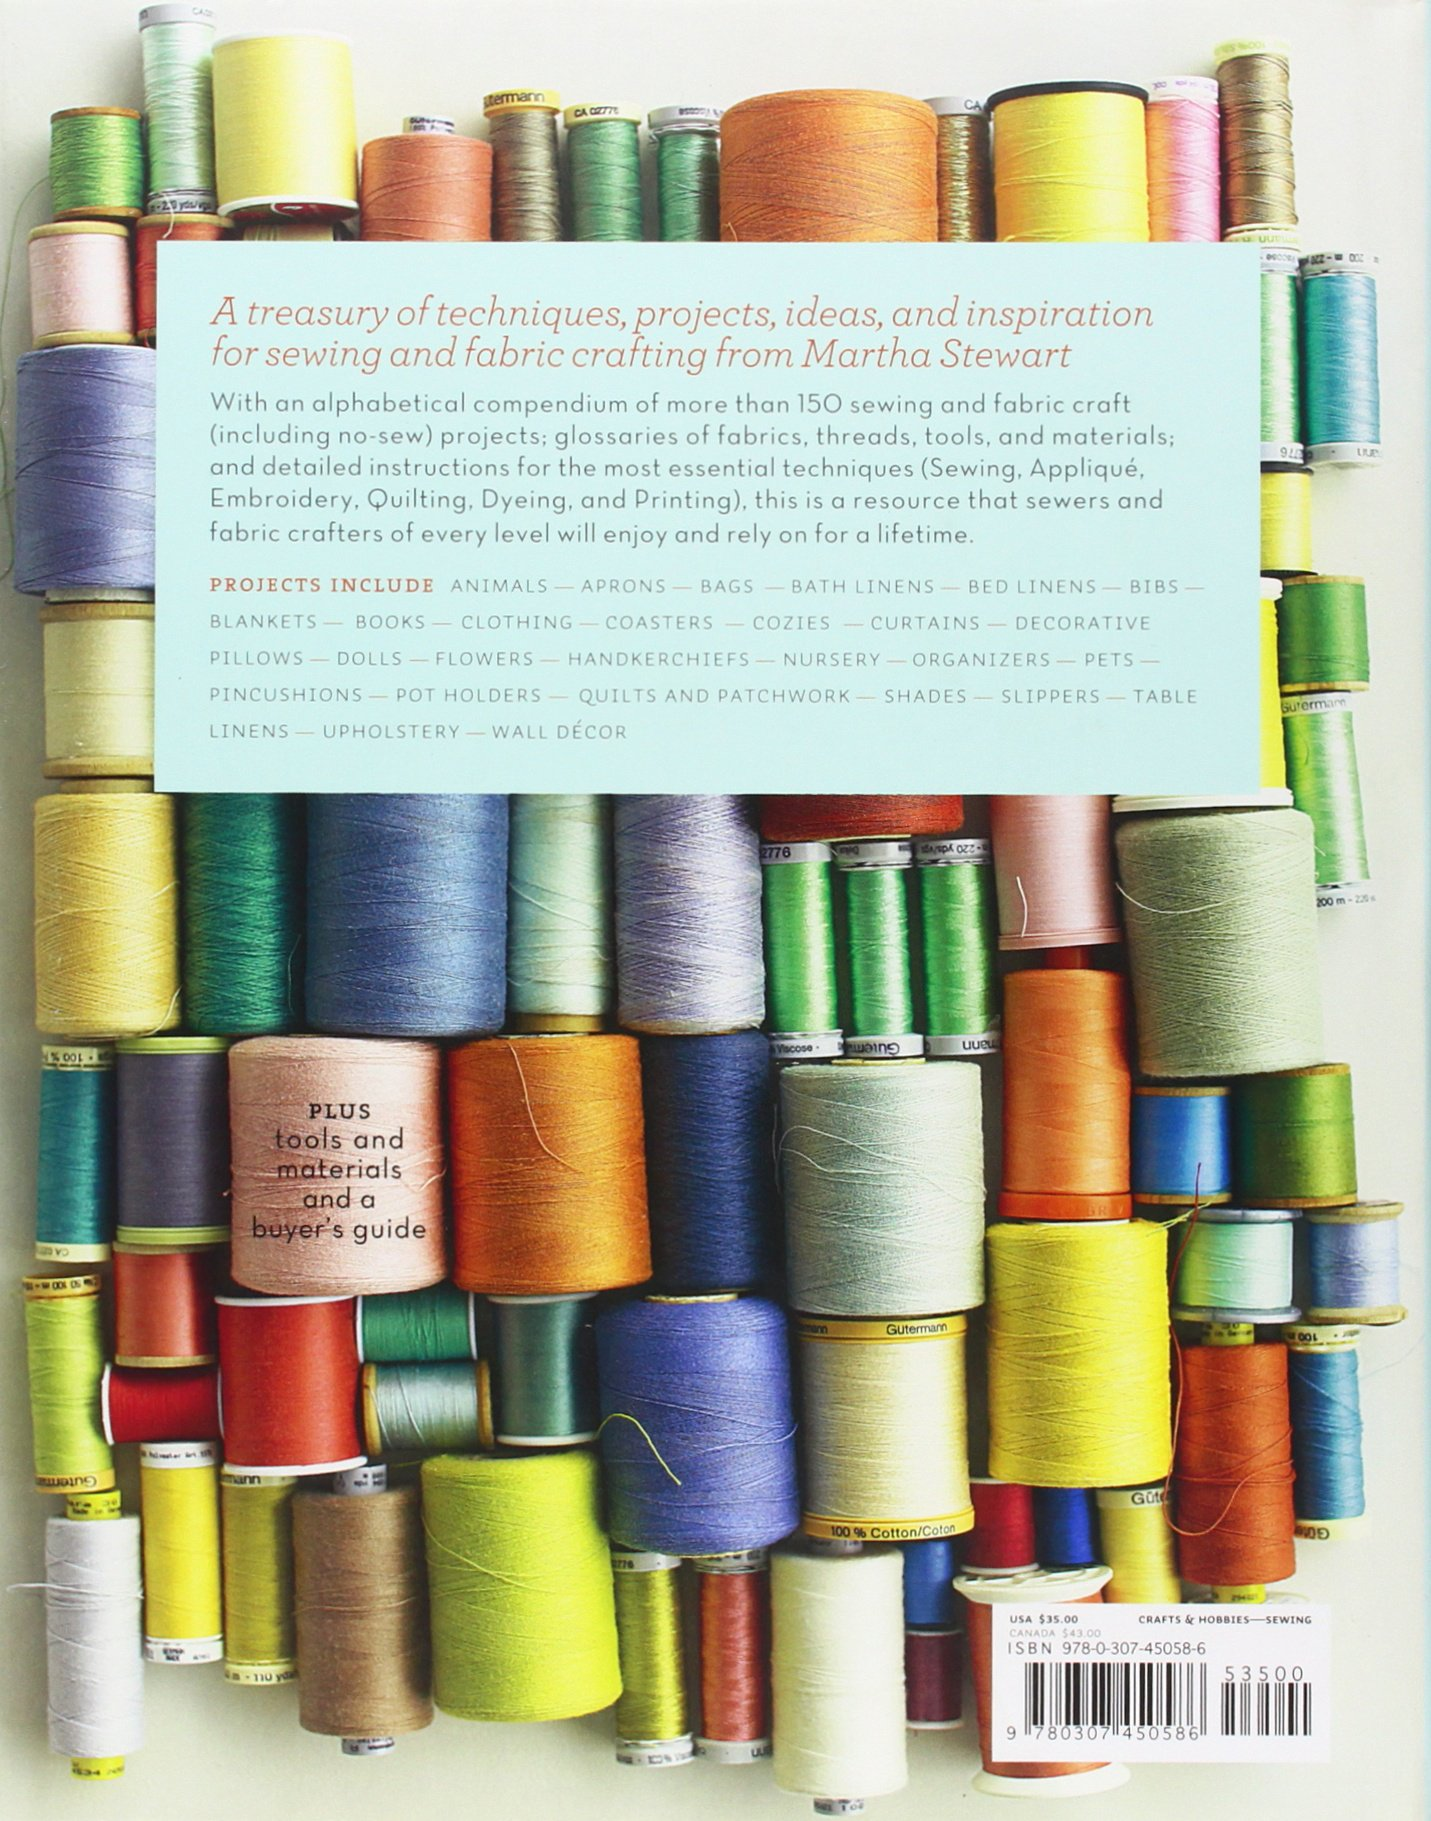 Martha stewarts encyclopedia of sewing and fabric crafts basic martha stewarts encyclopedia of sewing and fabric crafts basic techniques for sewing applique embroidery quilting dyeing and printing watchthetrailerfo